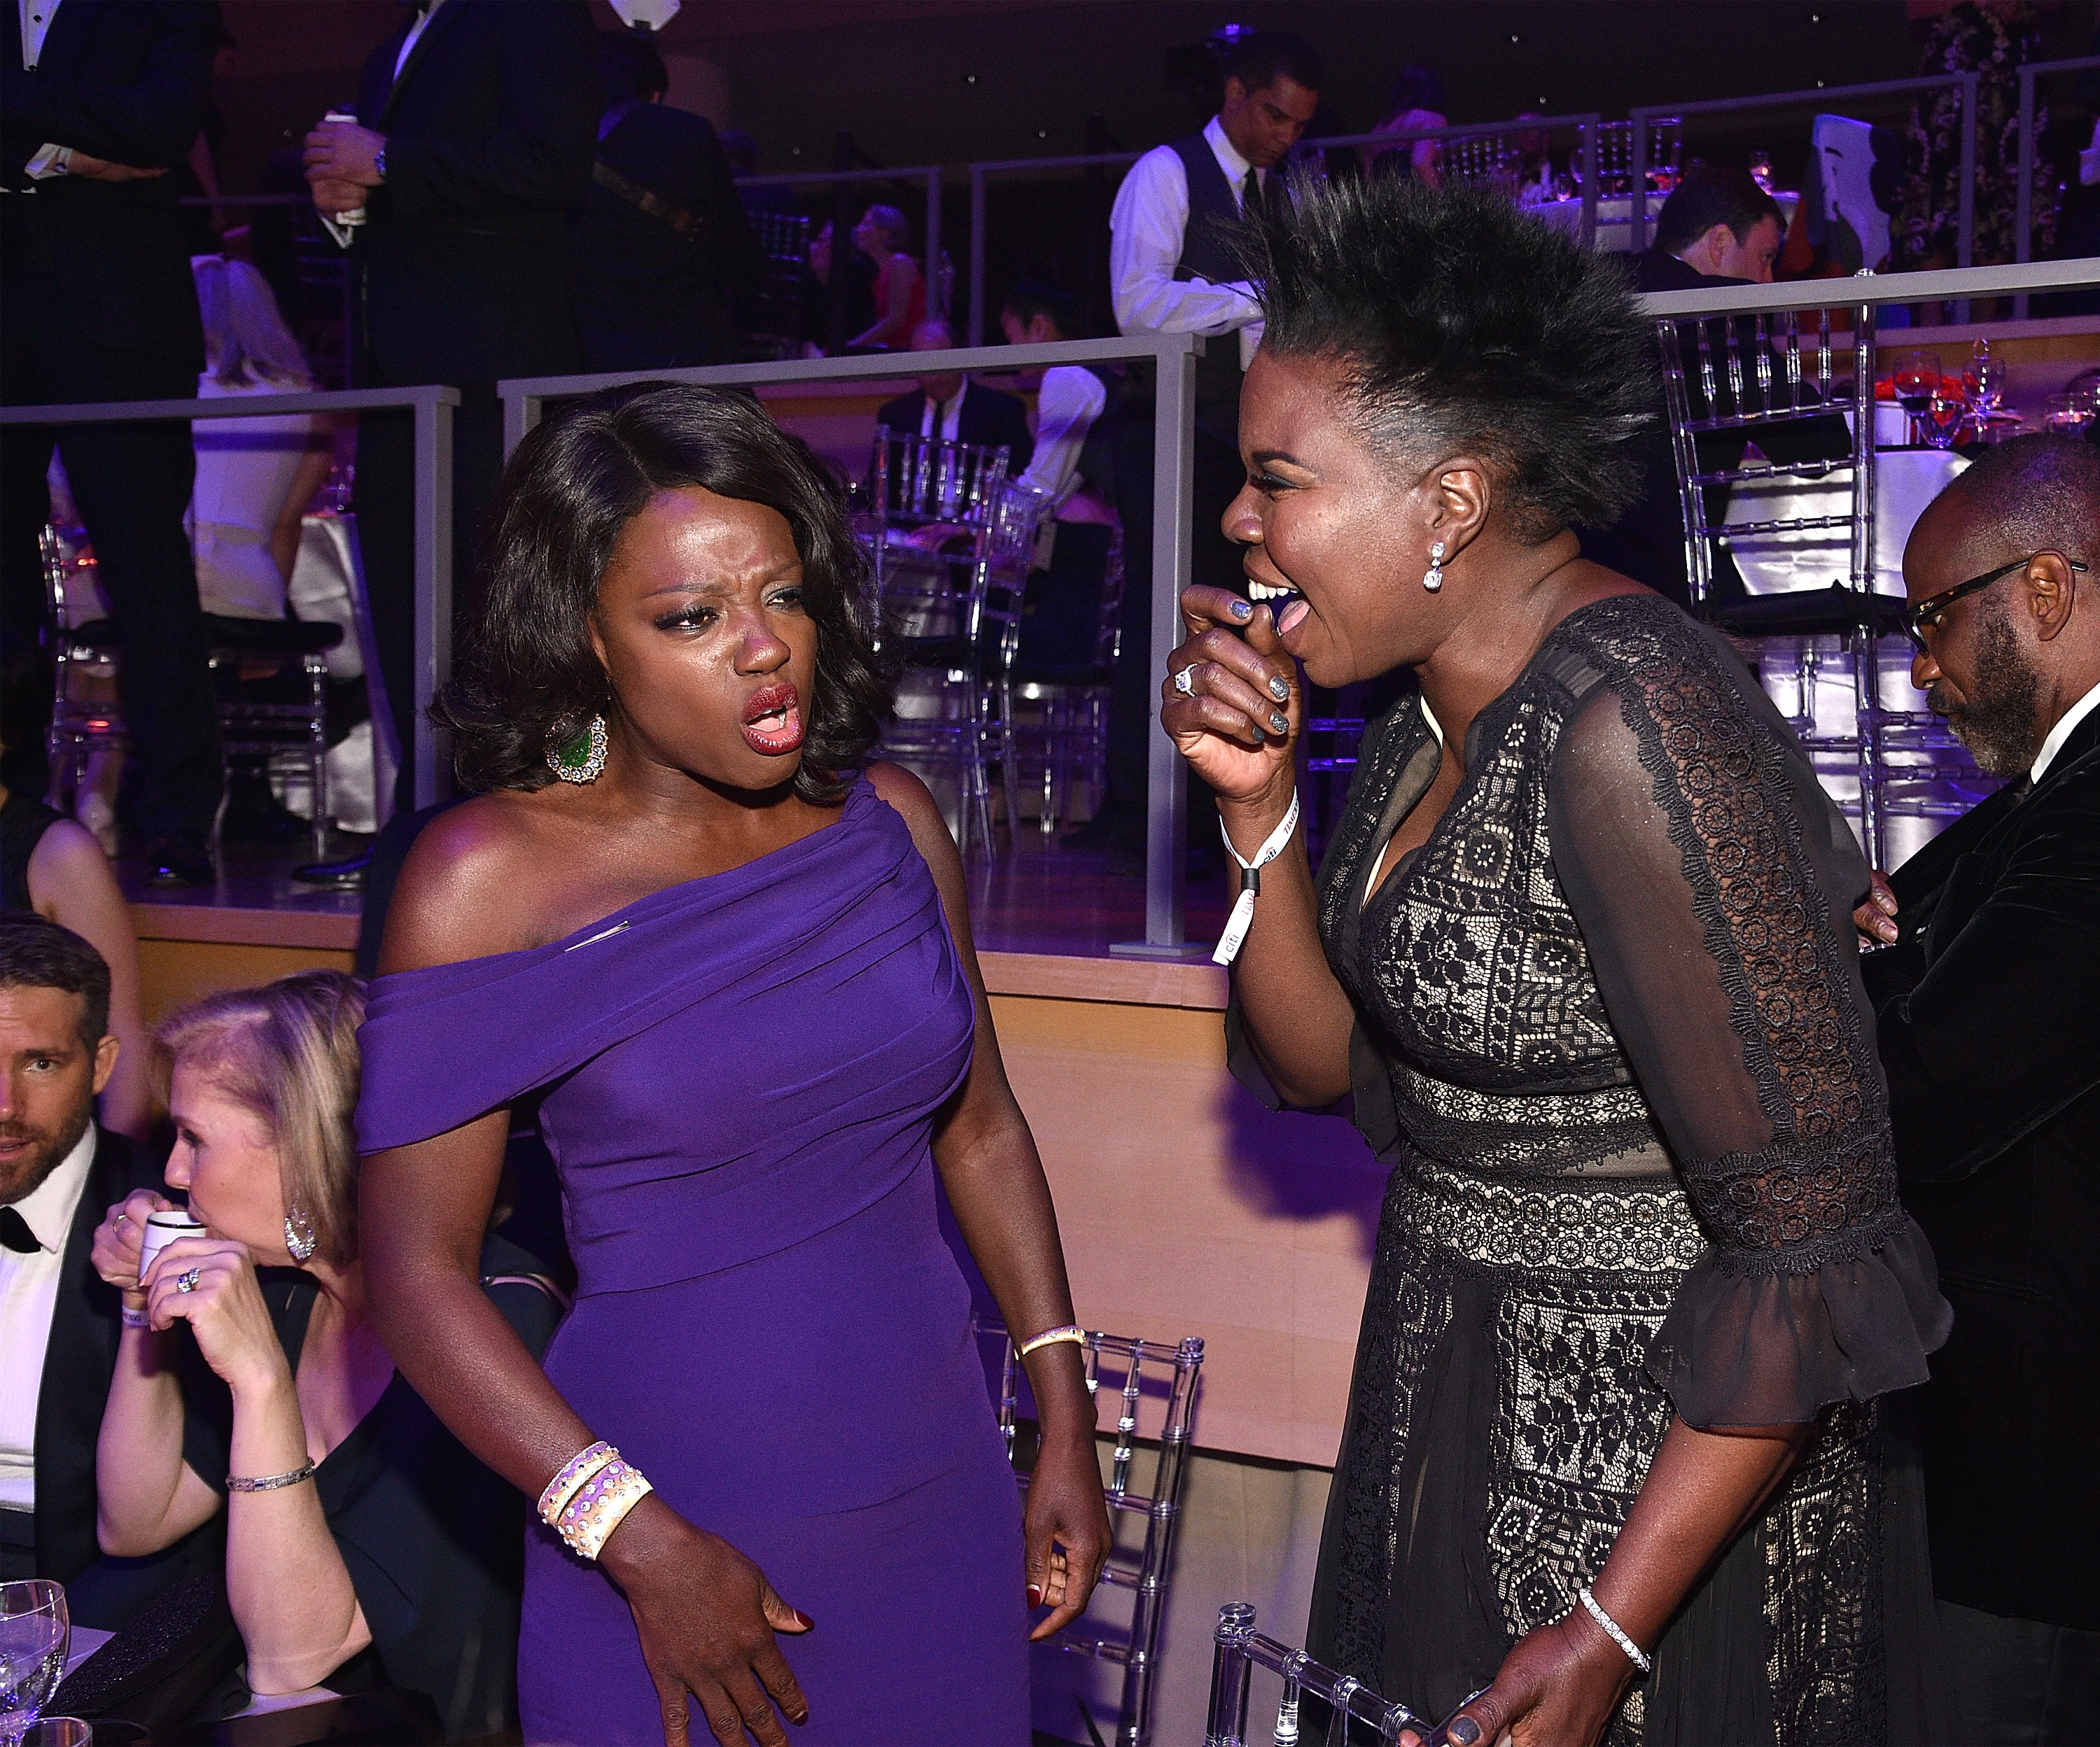 NEW YORK, NY - APRIL 25:  Viola Davis and Leslie Jones attend 2017 Time 100 Gala at Jazz at Lincoln Center on April 25, 2017 in New York City.  (Photo by Kevin Mazur/Getty Images for TIME)